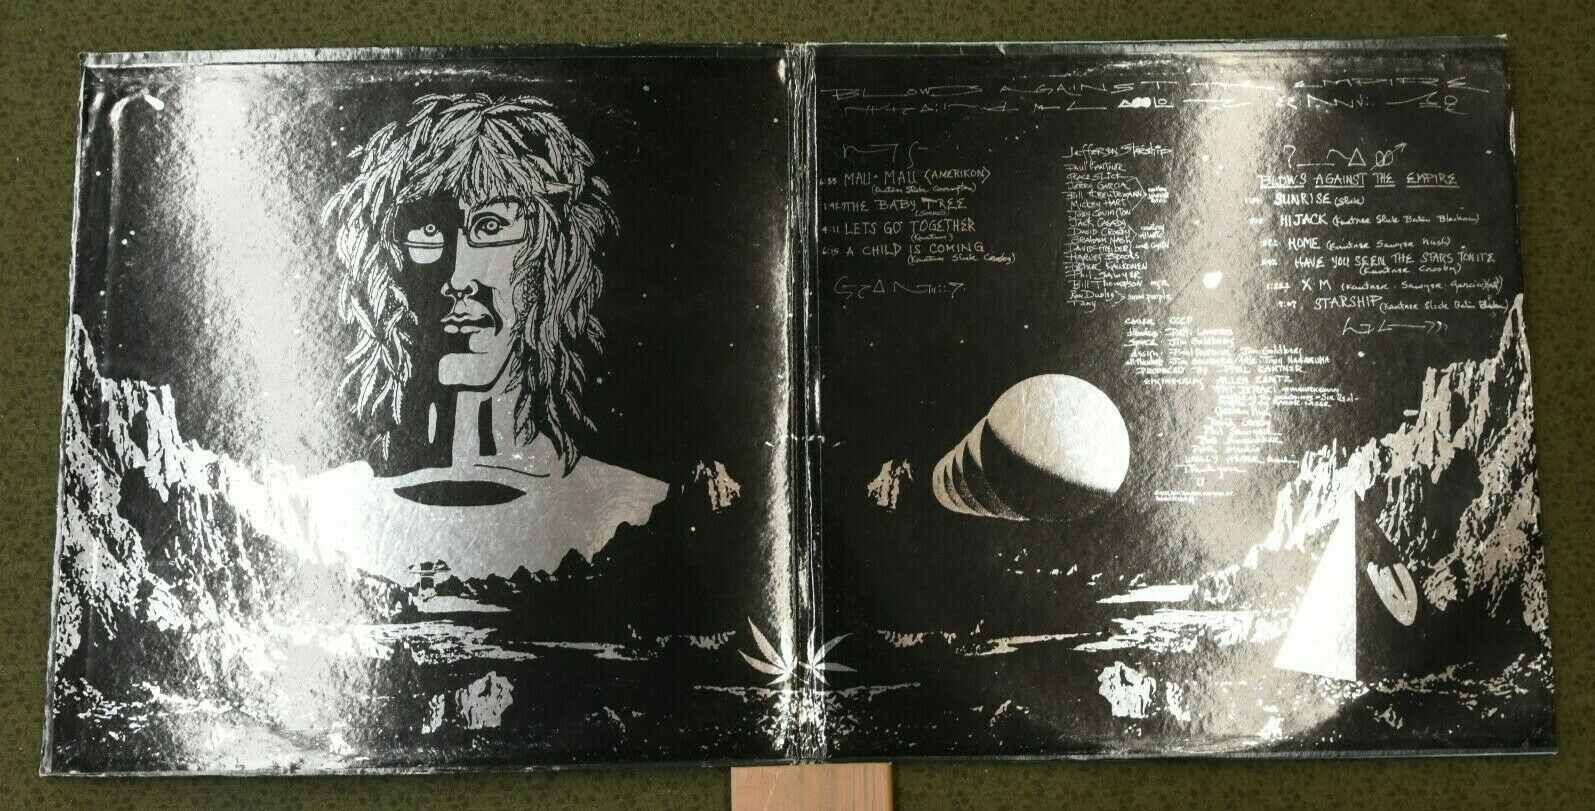 Jefferson Starship Blows Against The Empire LP Gatefold, Album NM Jacket VG  - $10.95